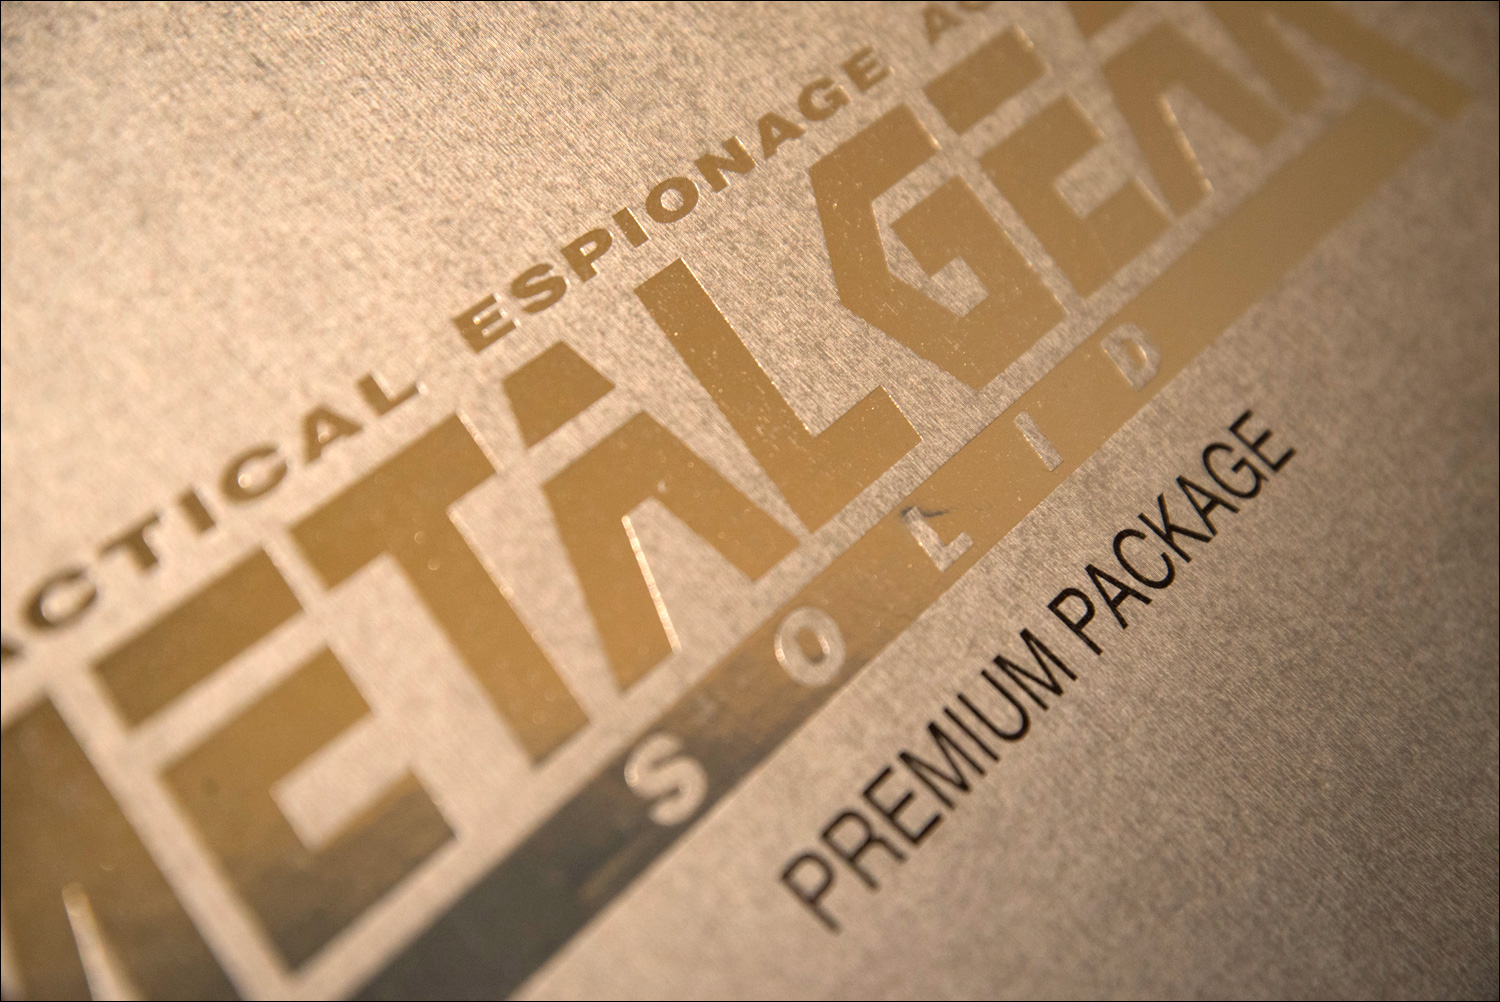 Metal-Gear-Solid-Premium-Package-Logo